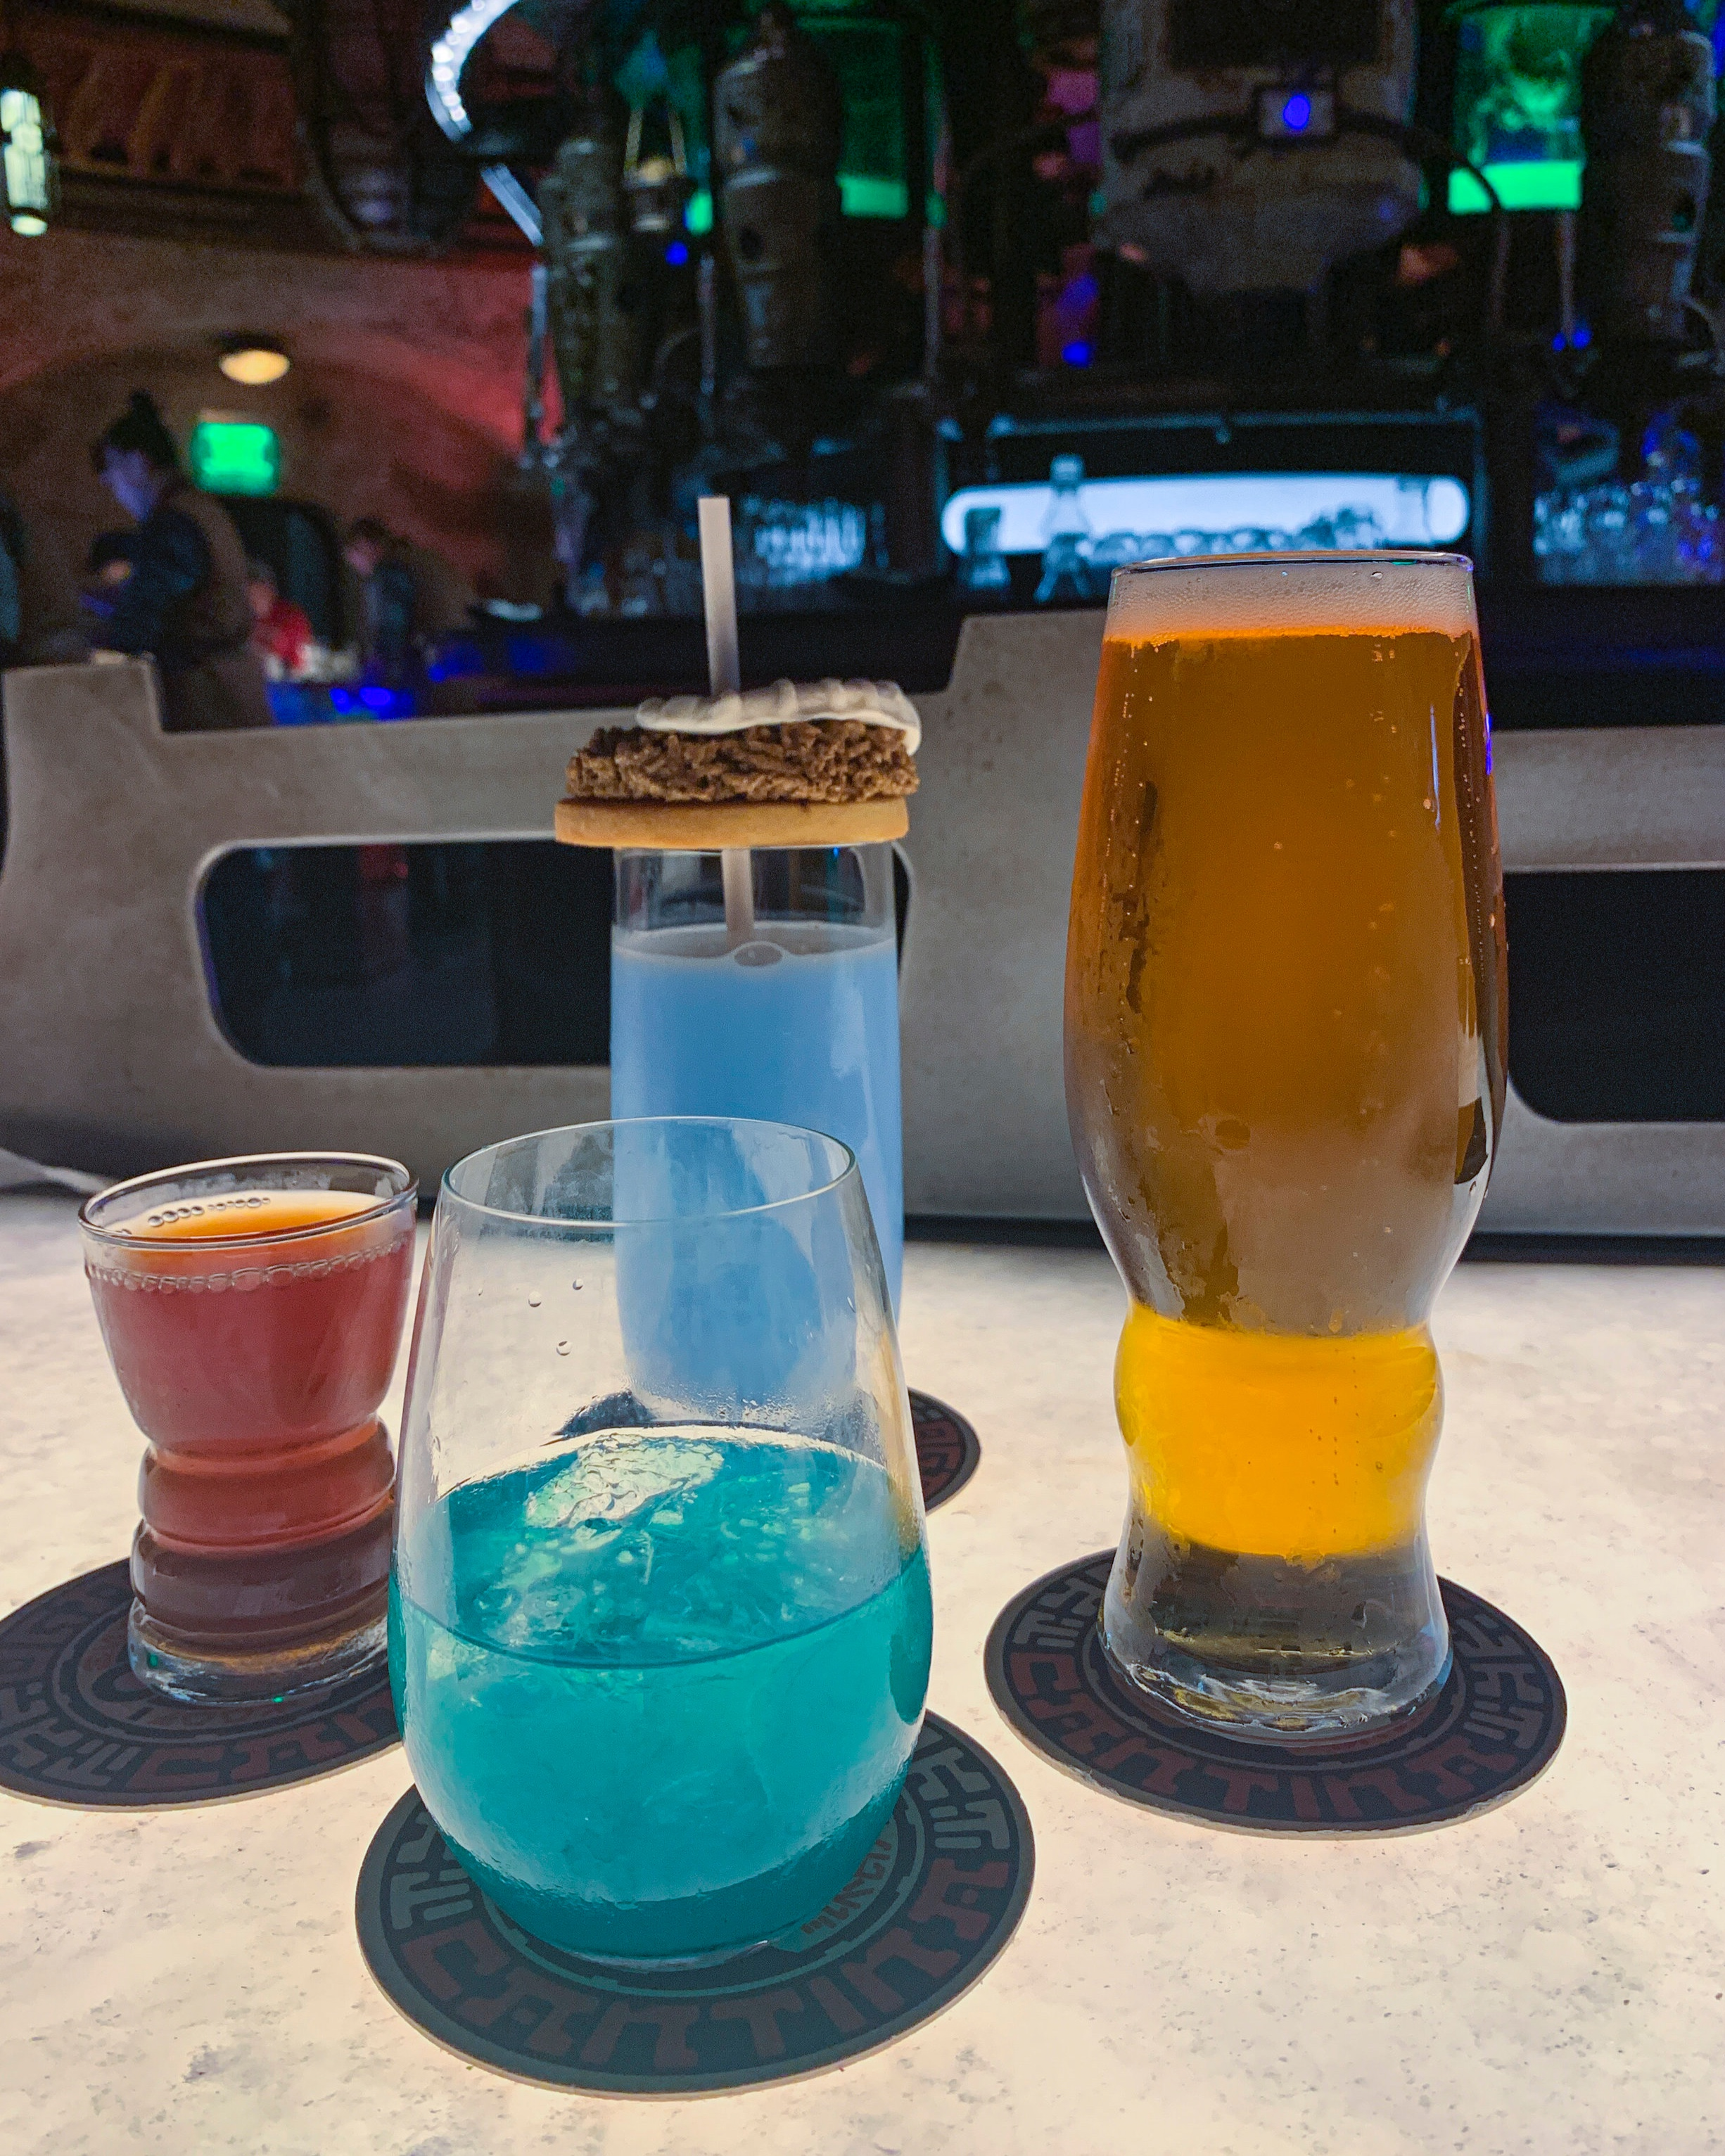 An assortment of drinks including our Jedi Mind Trick and Bantha Milk.